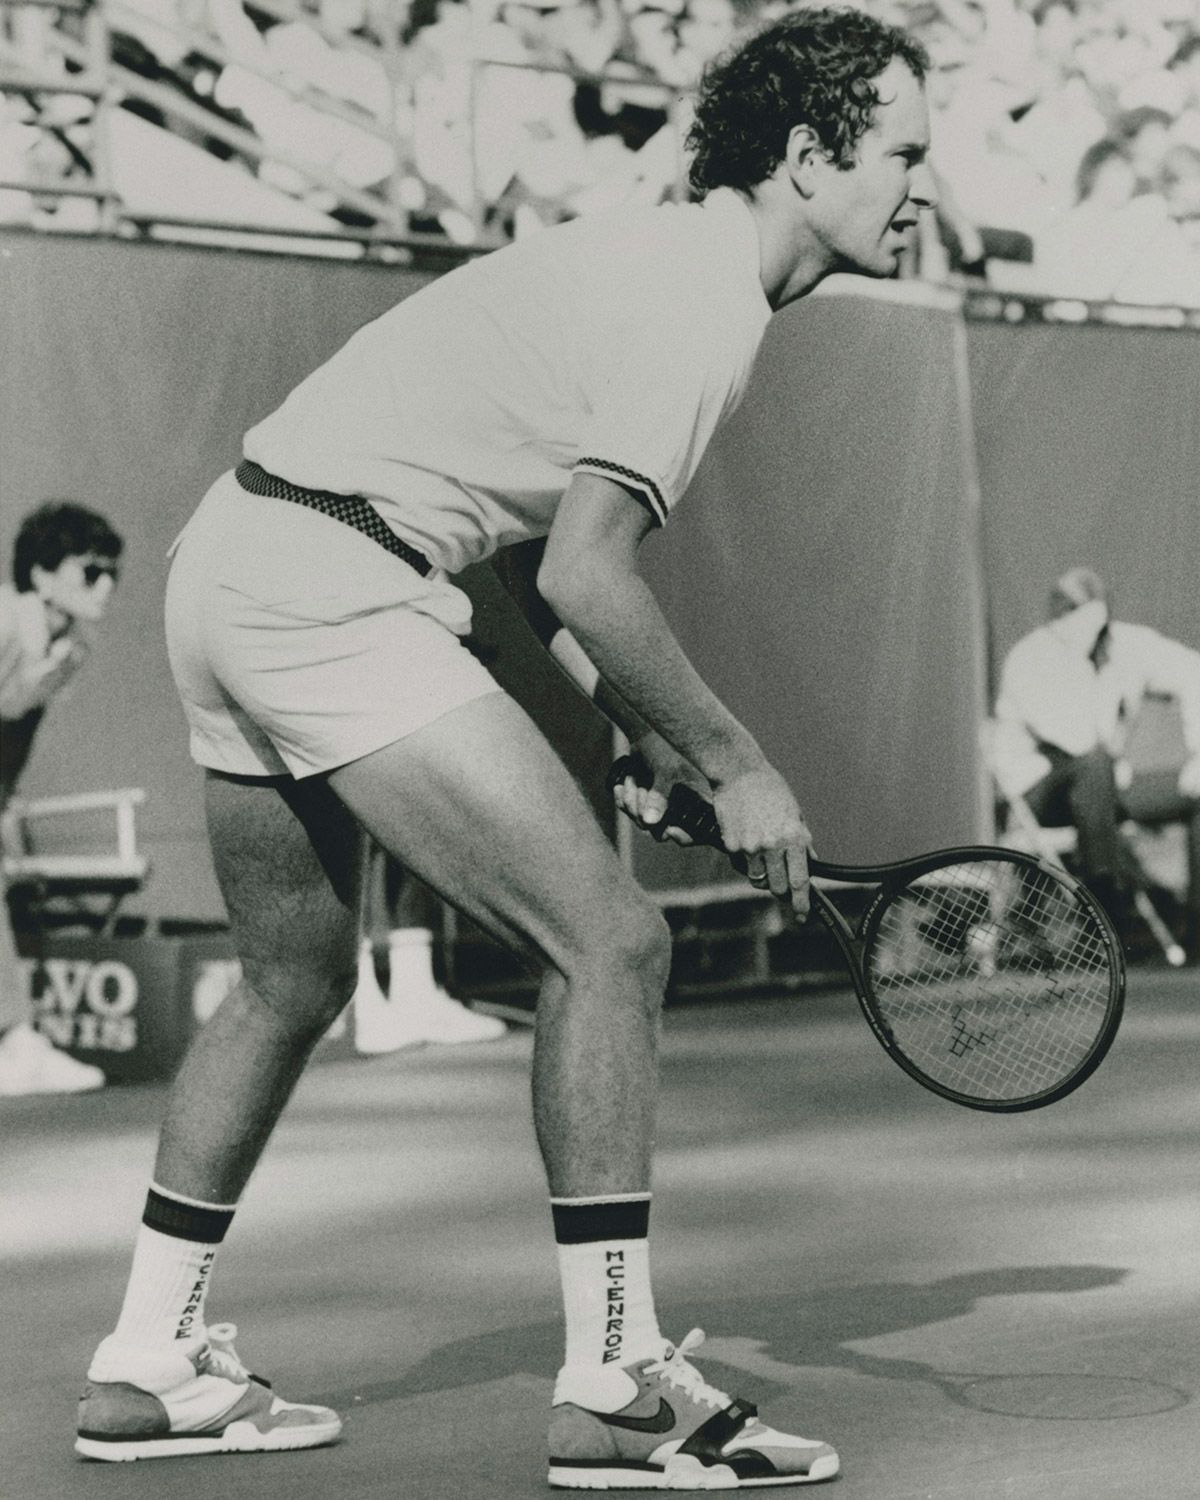 Men S Tennis And Fashion Most Fashionable Rivalries Of All Time